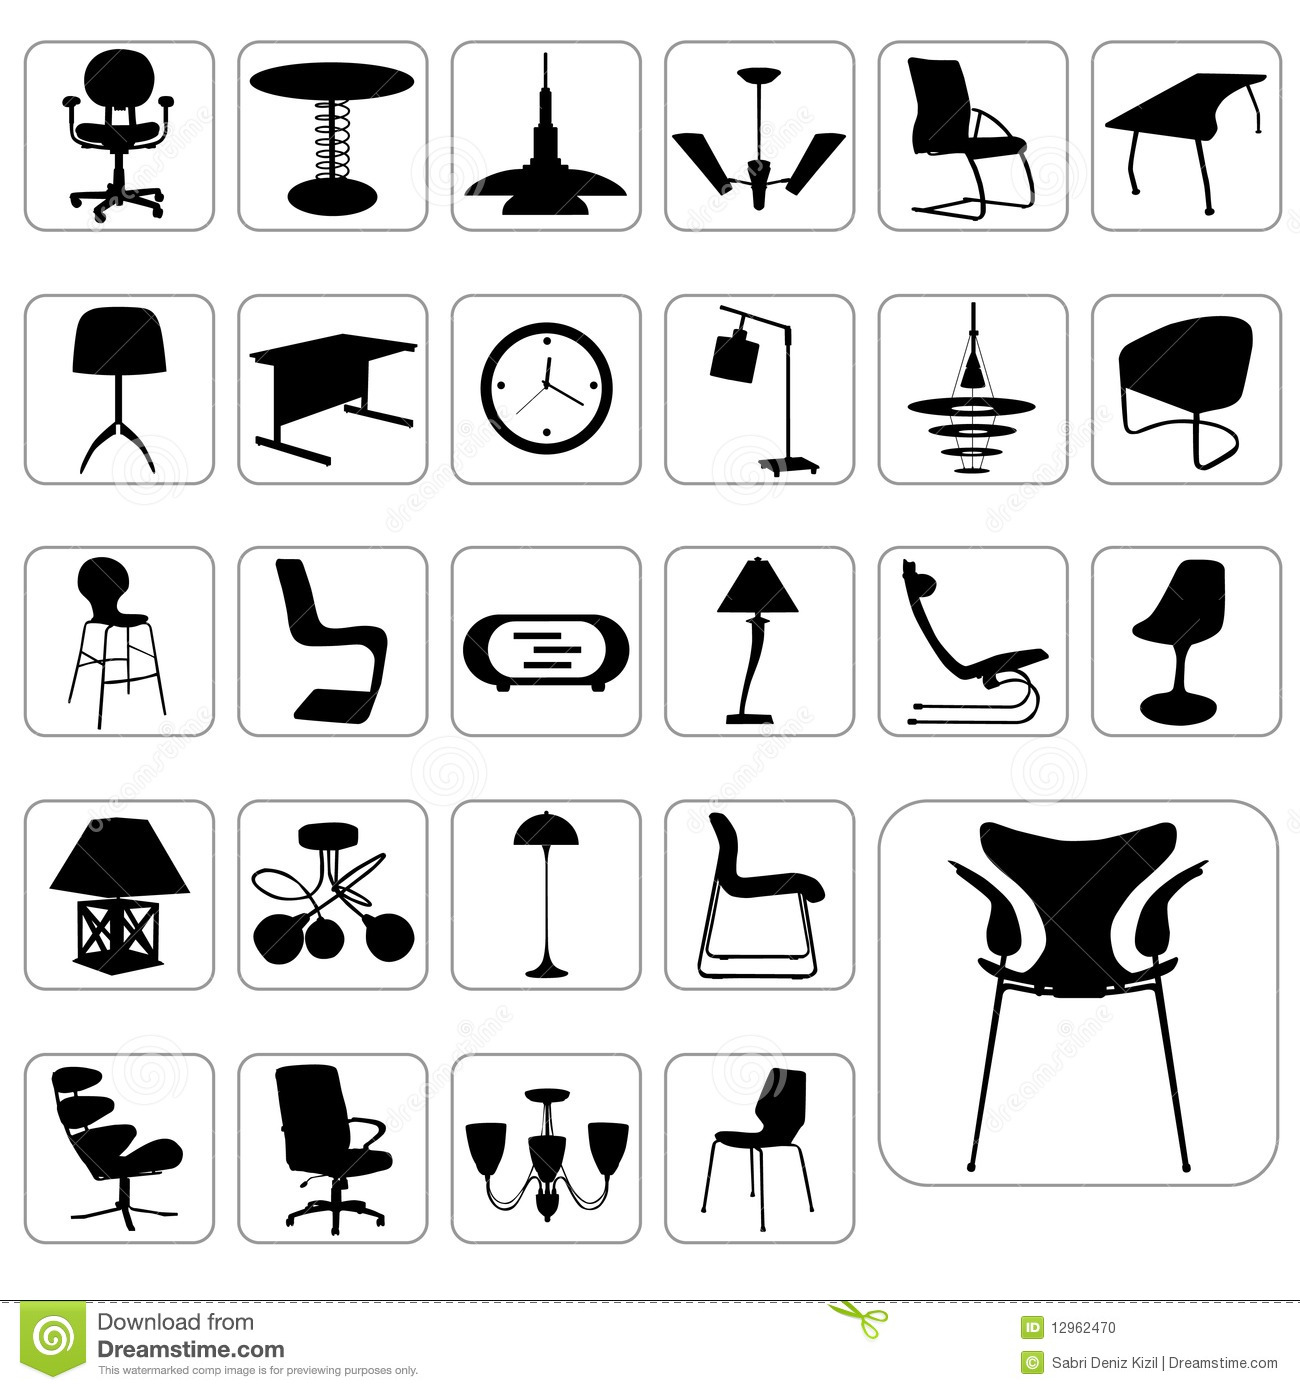 Modern Furniture Icon modern furniture 5 vector stock photo - image: 4594960